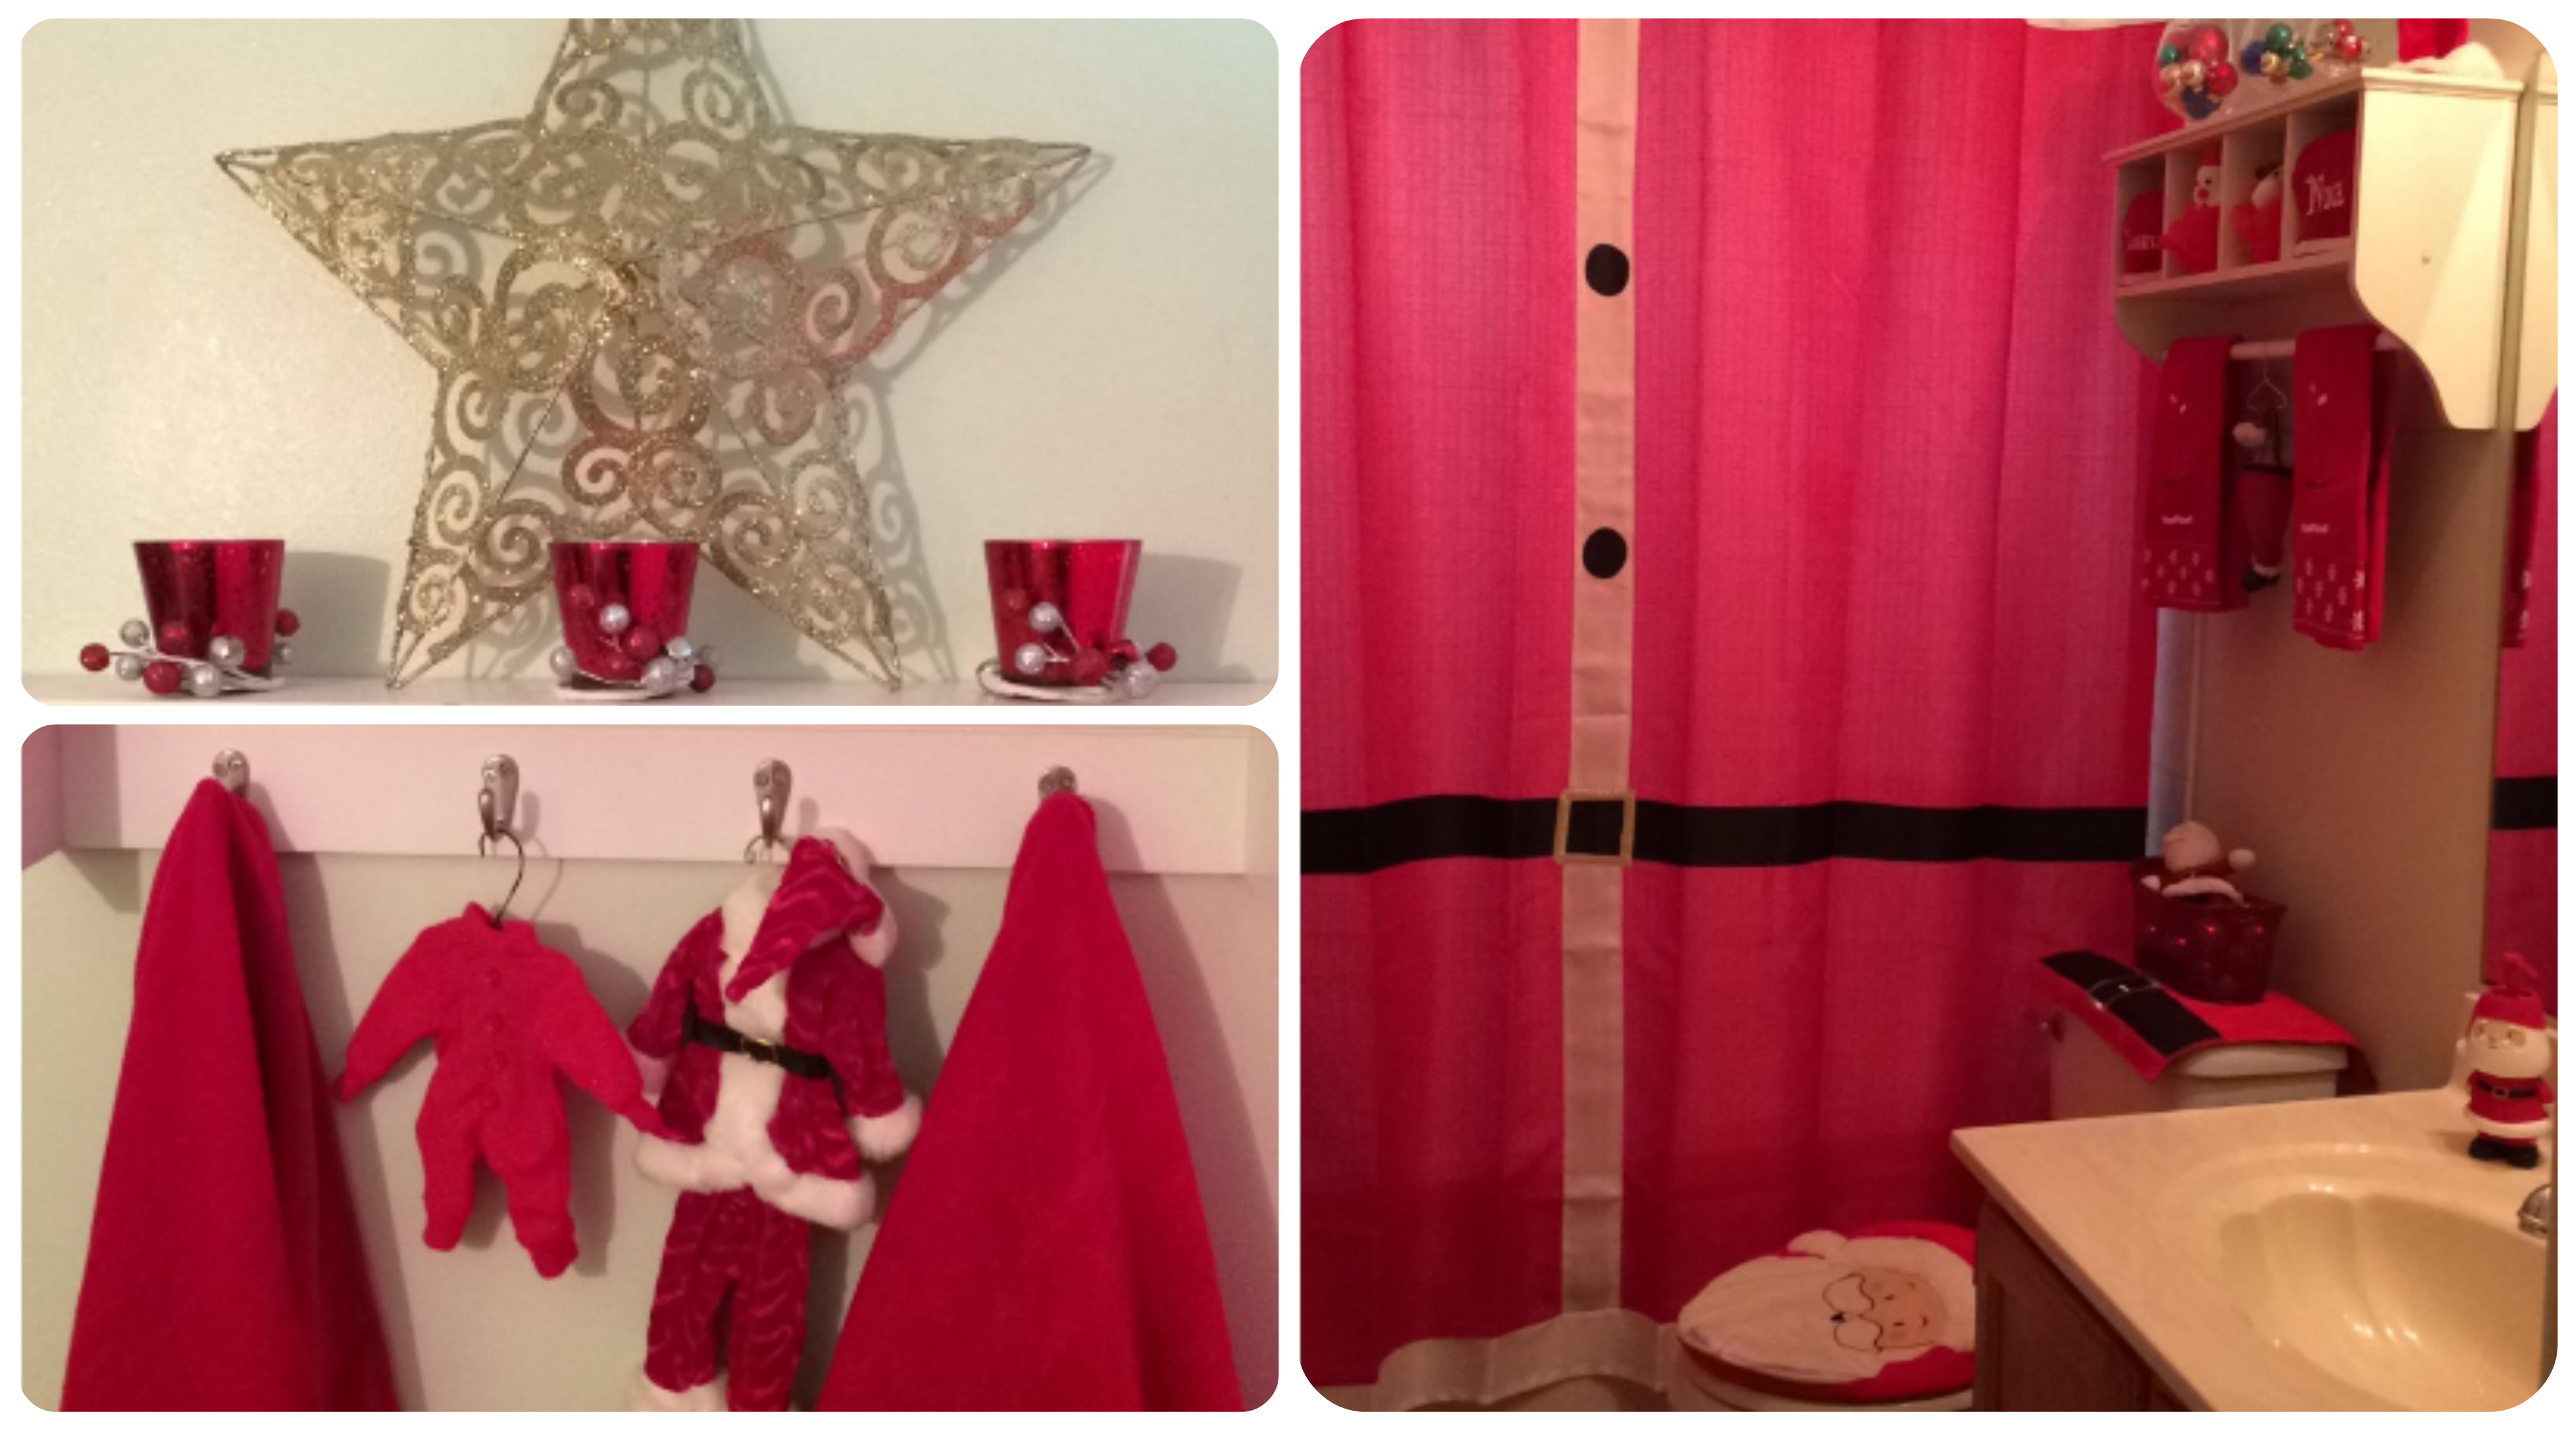 [Christmas Santa Bathroom Decor]